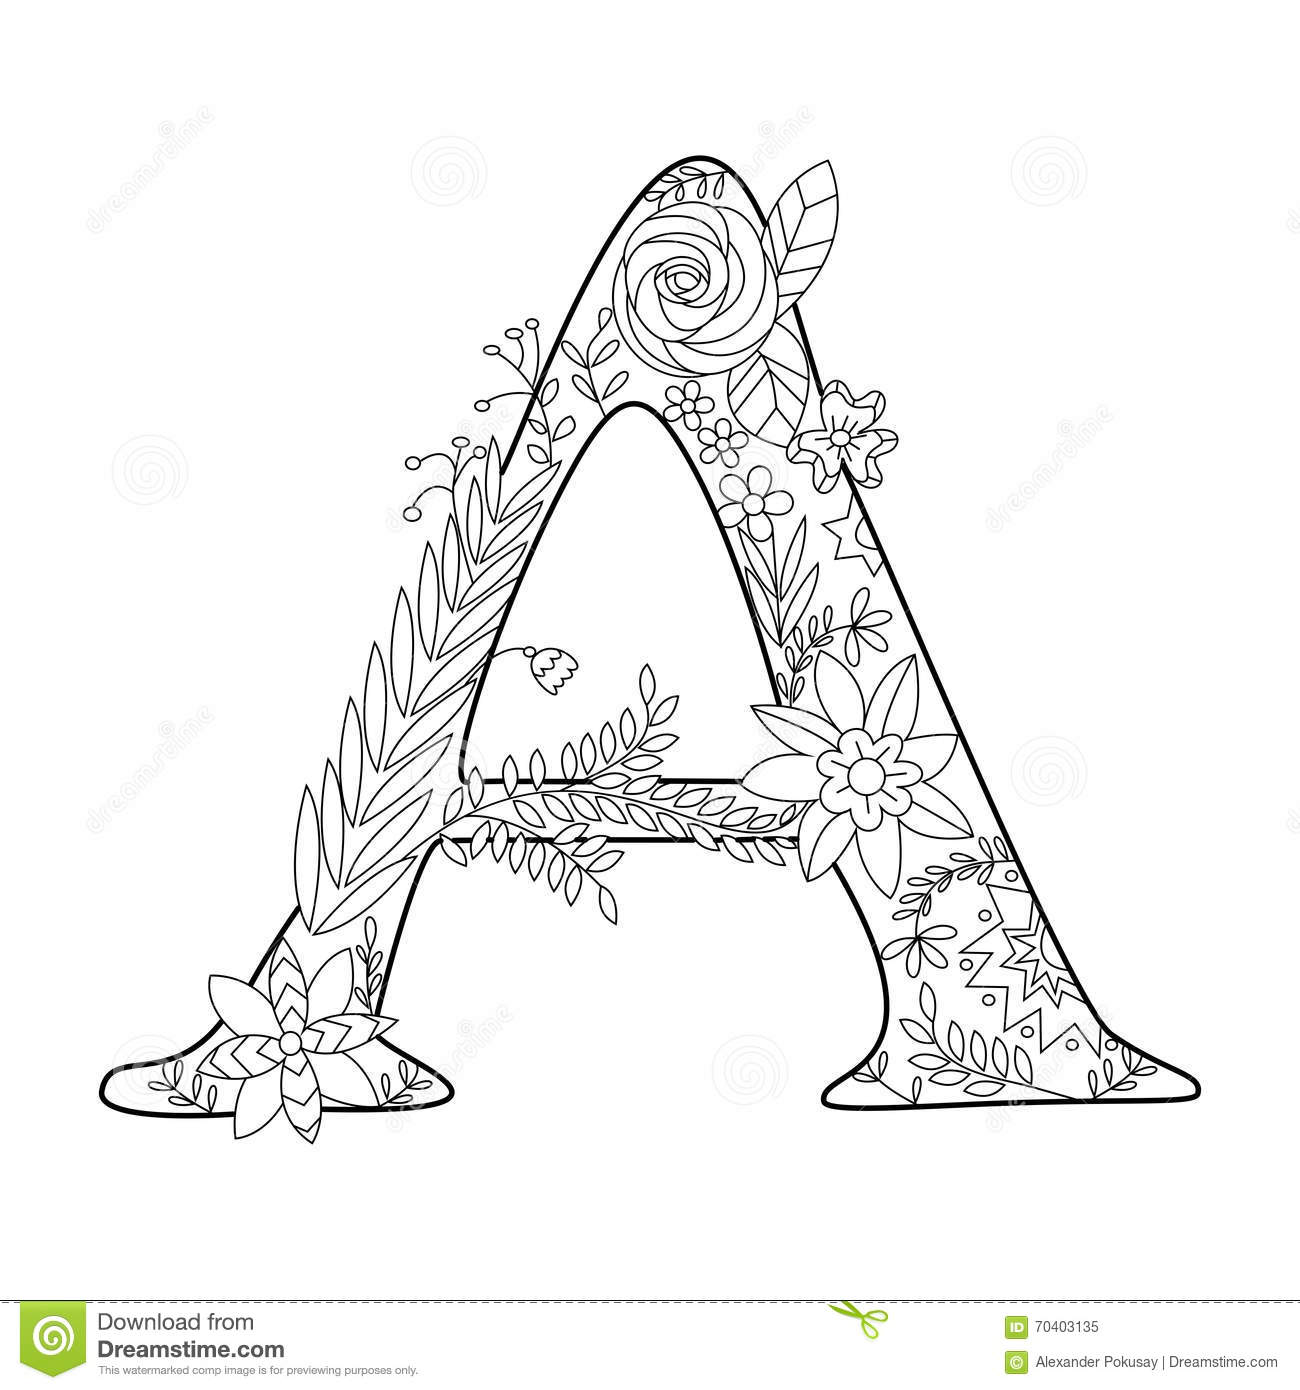 Zen coloring books for adults app - Letter A Coloring Book For Adults Vector